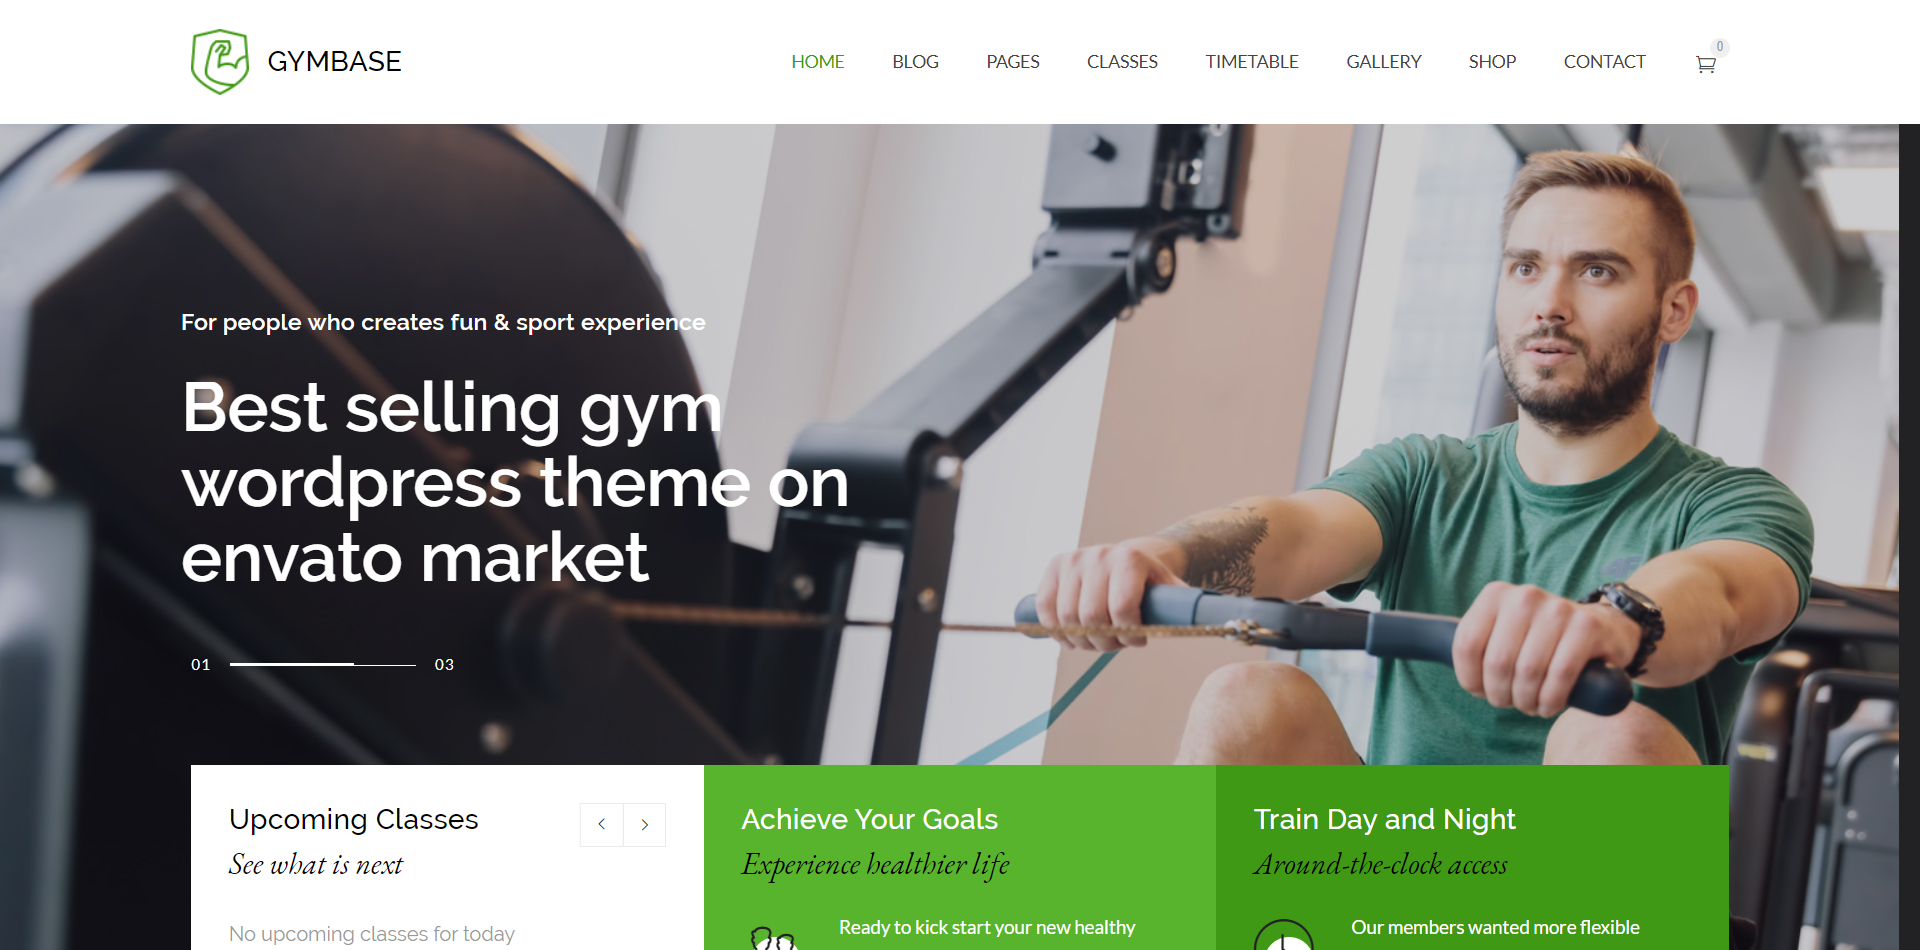 Gymbase WordPress theme Homepage screenshot